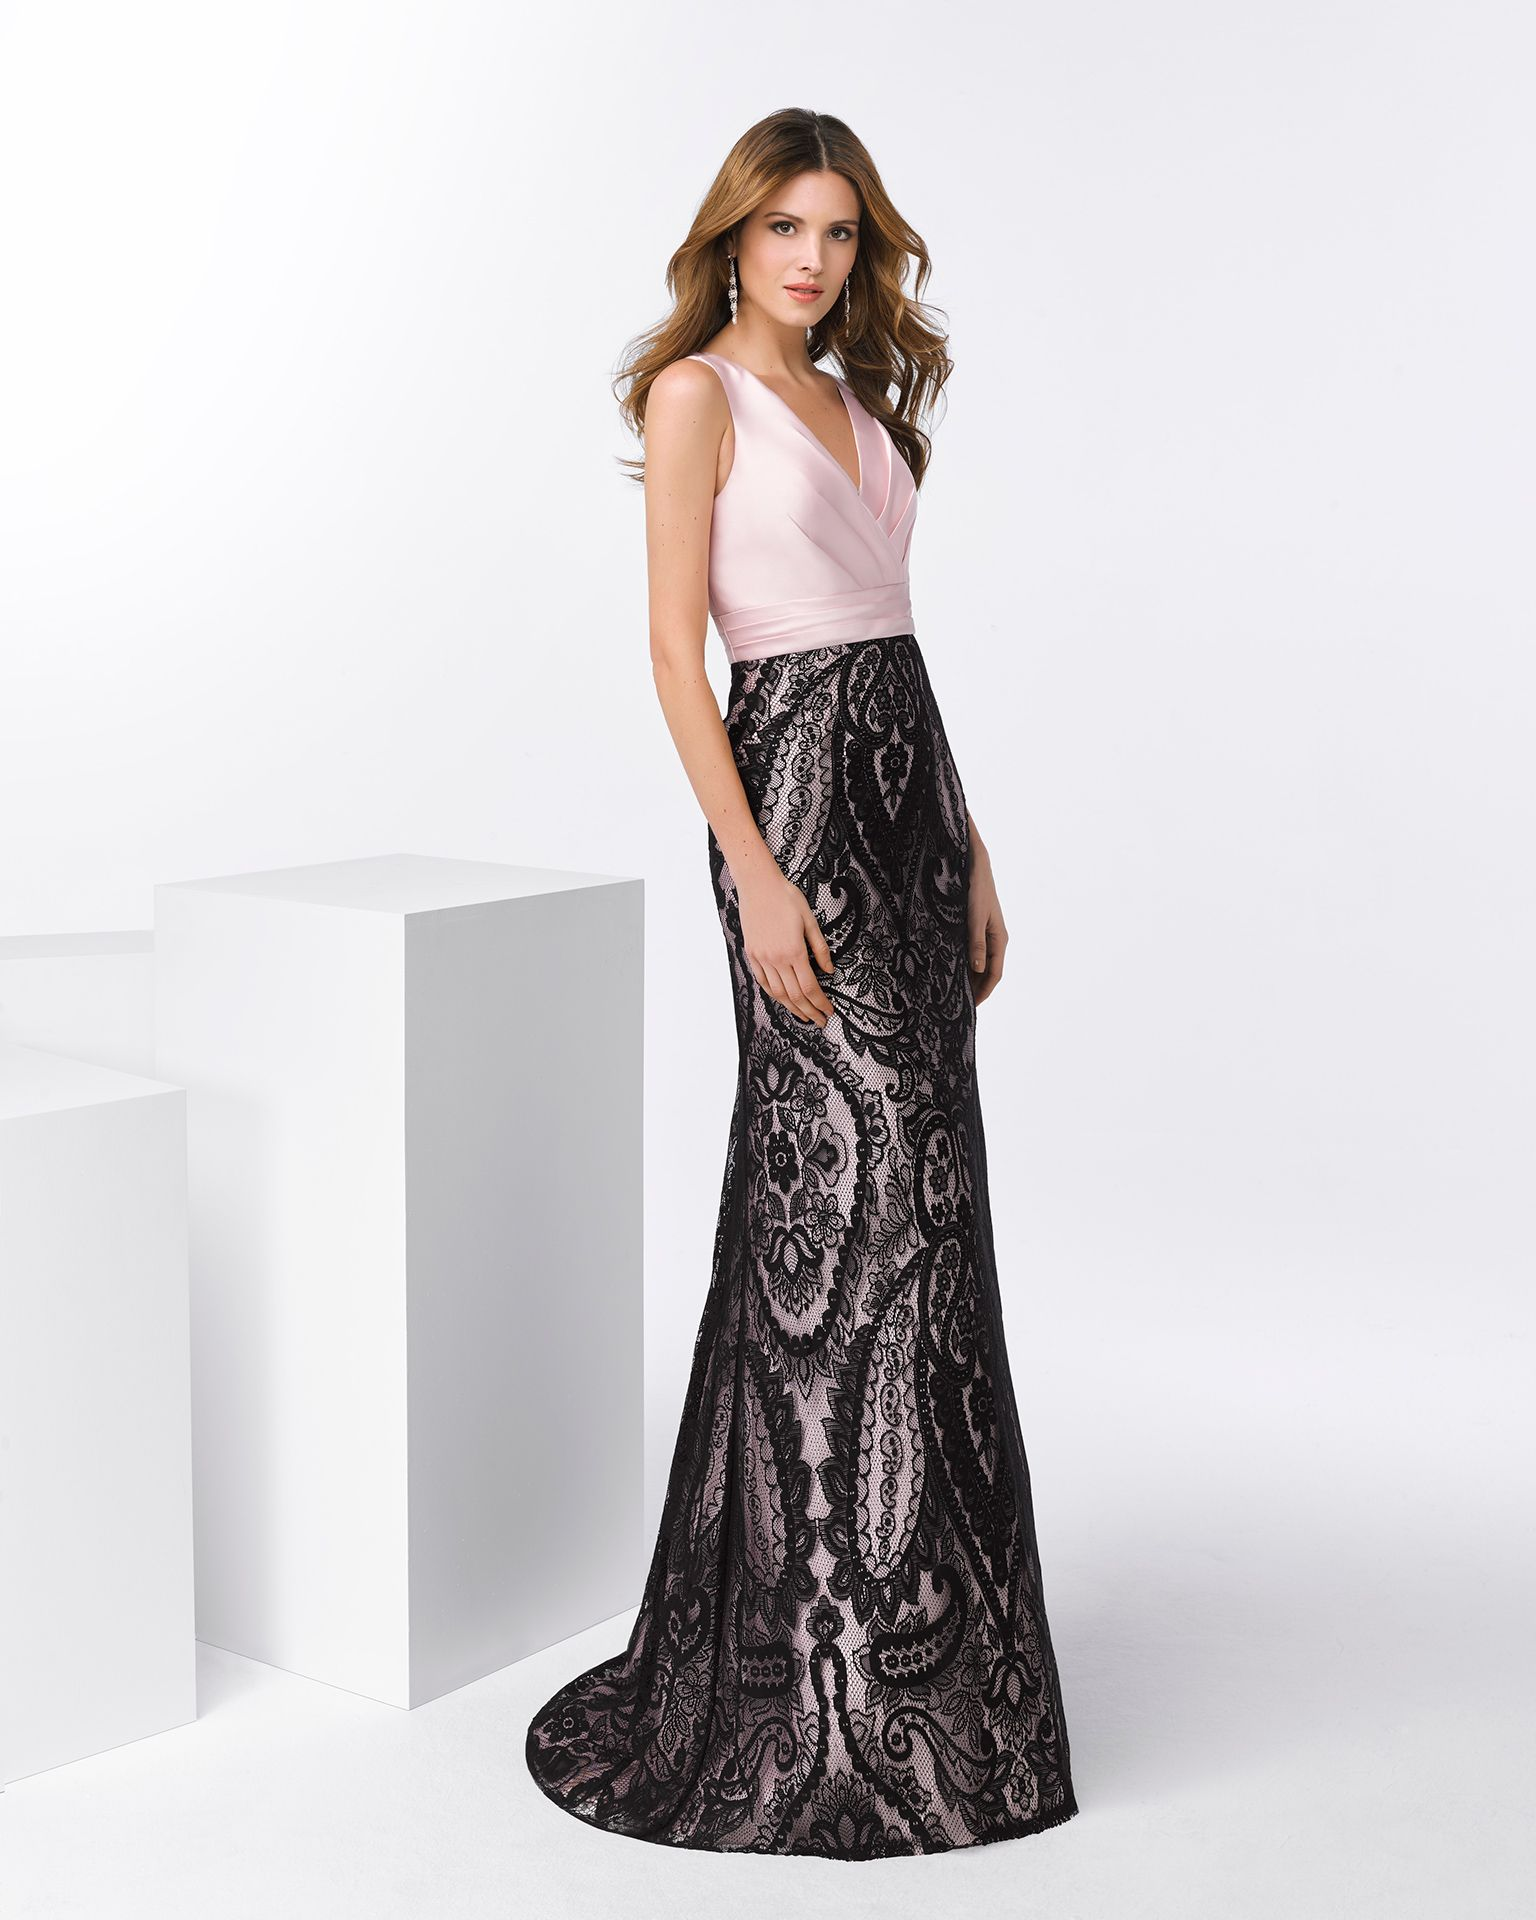 0fc0783a2 Long mikado cocktail dress with V-neckline, open back and skirt with lace  detailing. Available in black/pink, black/silver and black/coral.